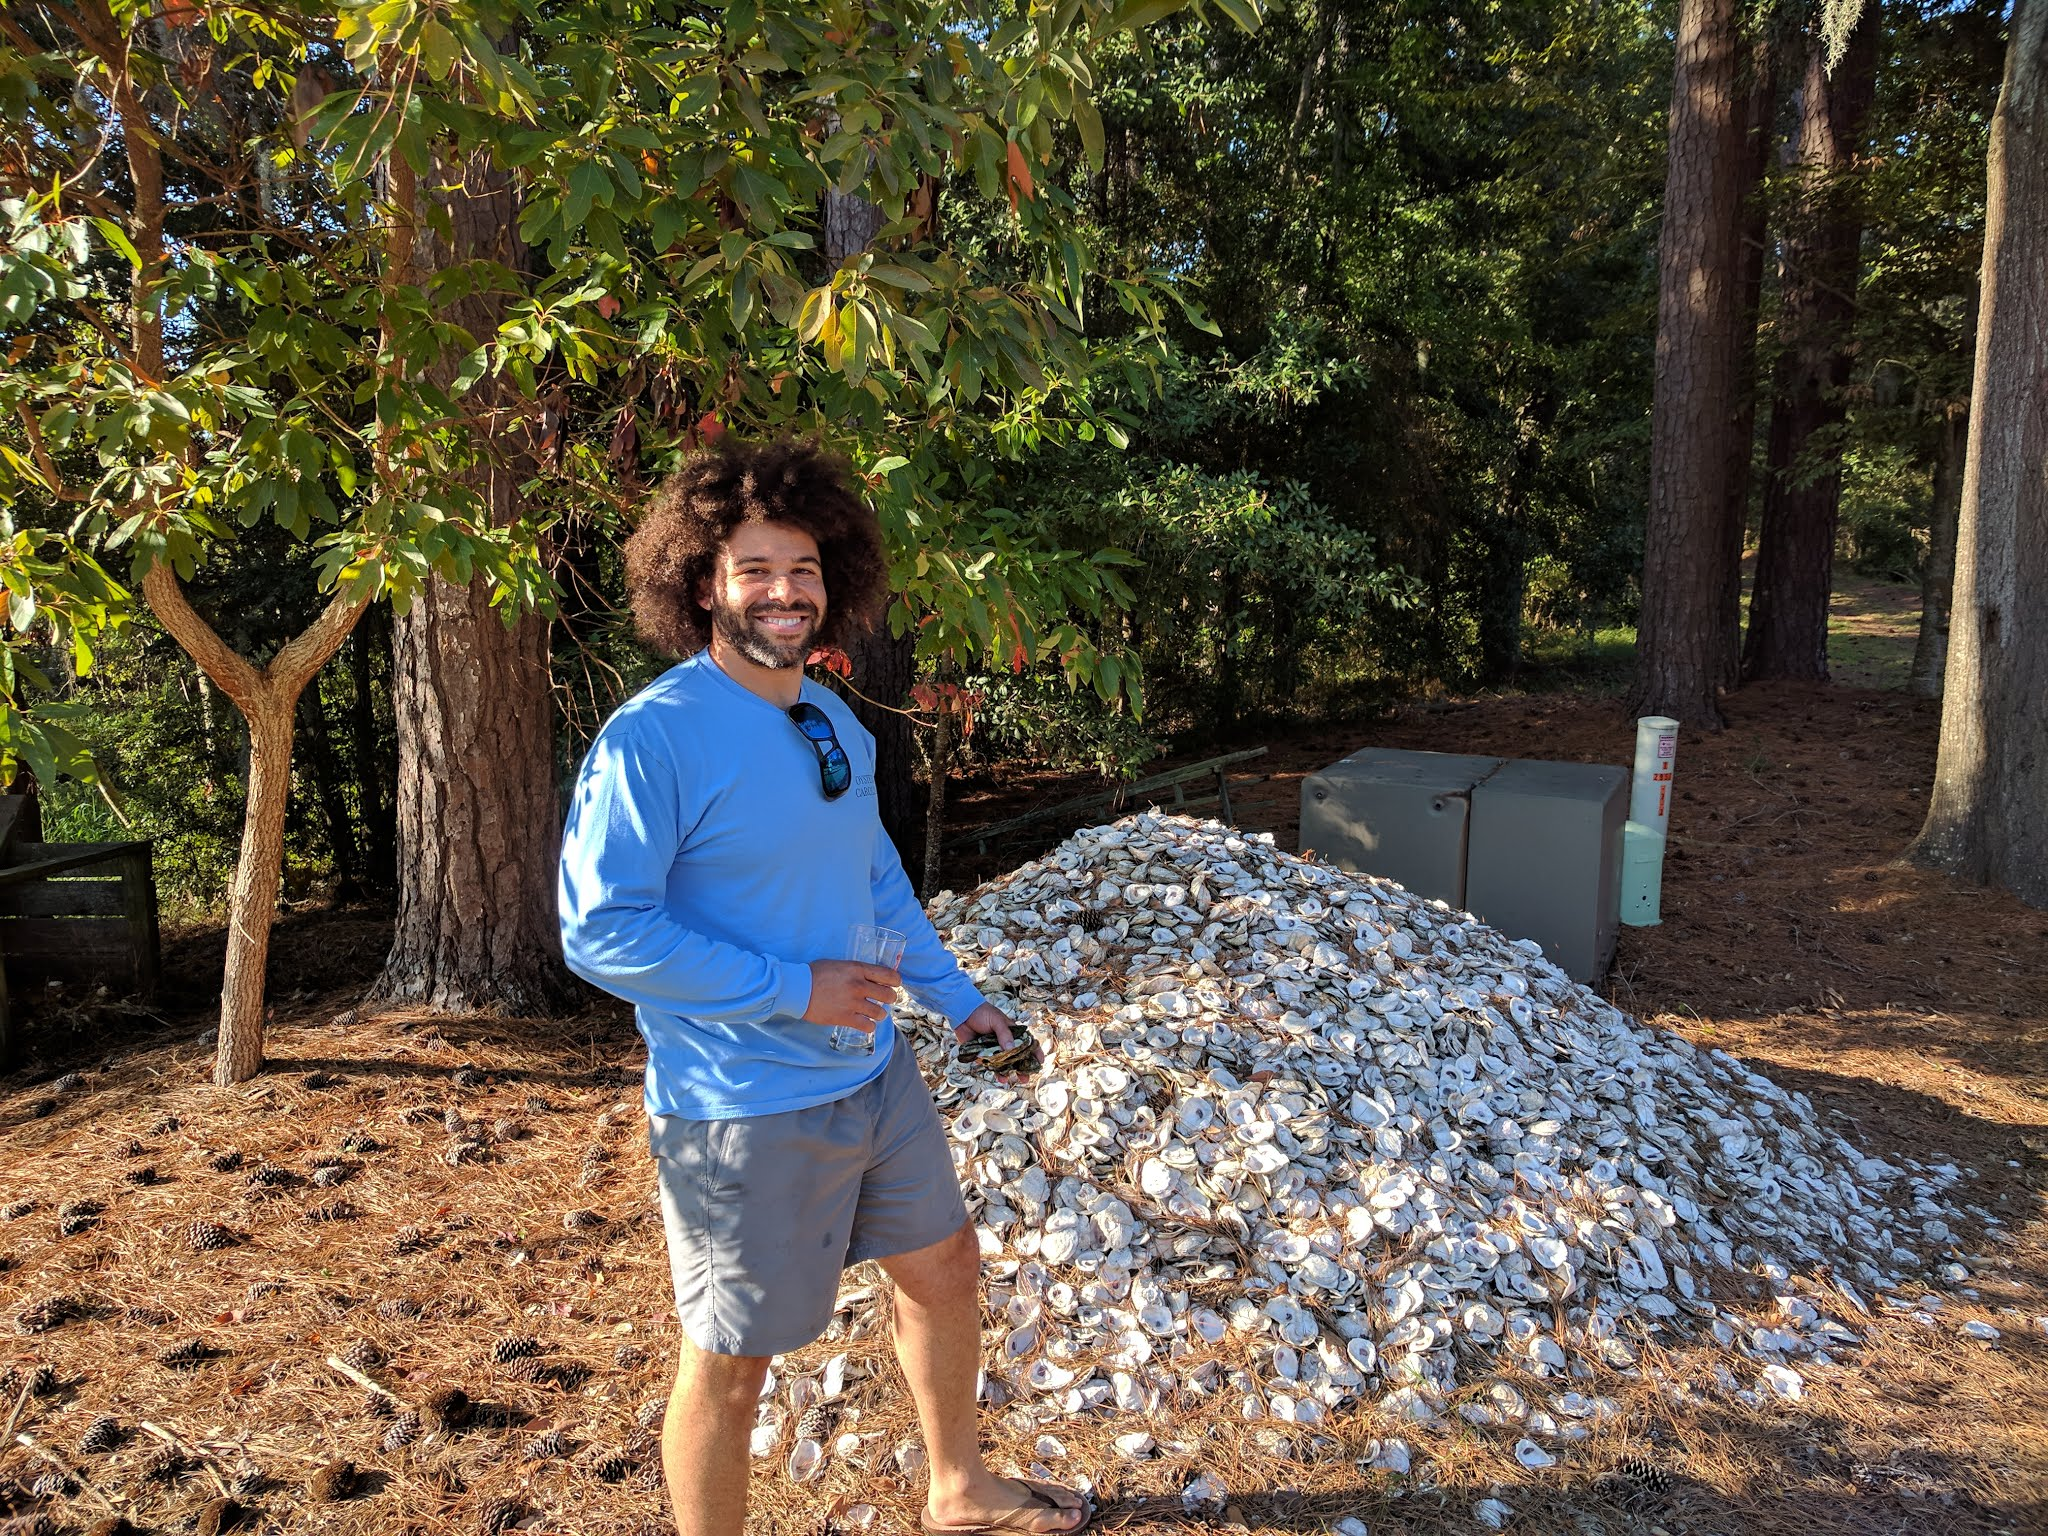 Pile of Oyster shells